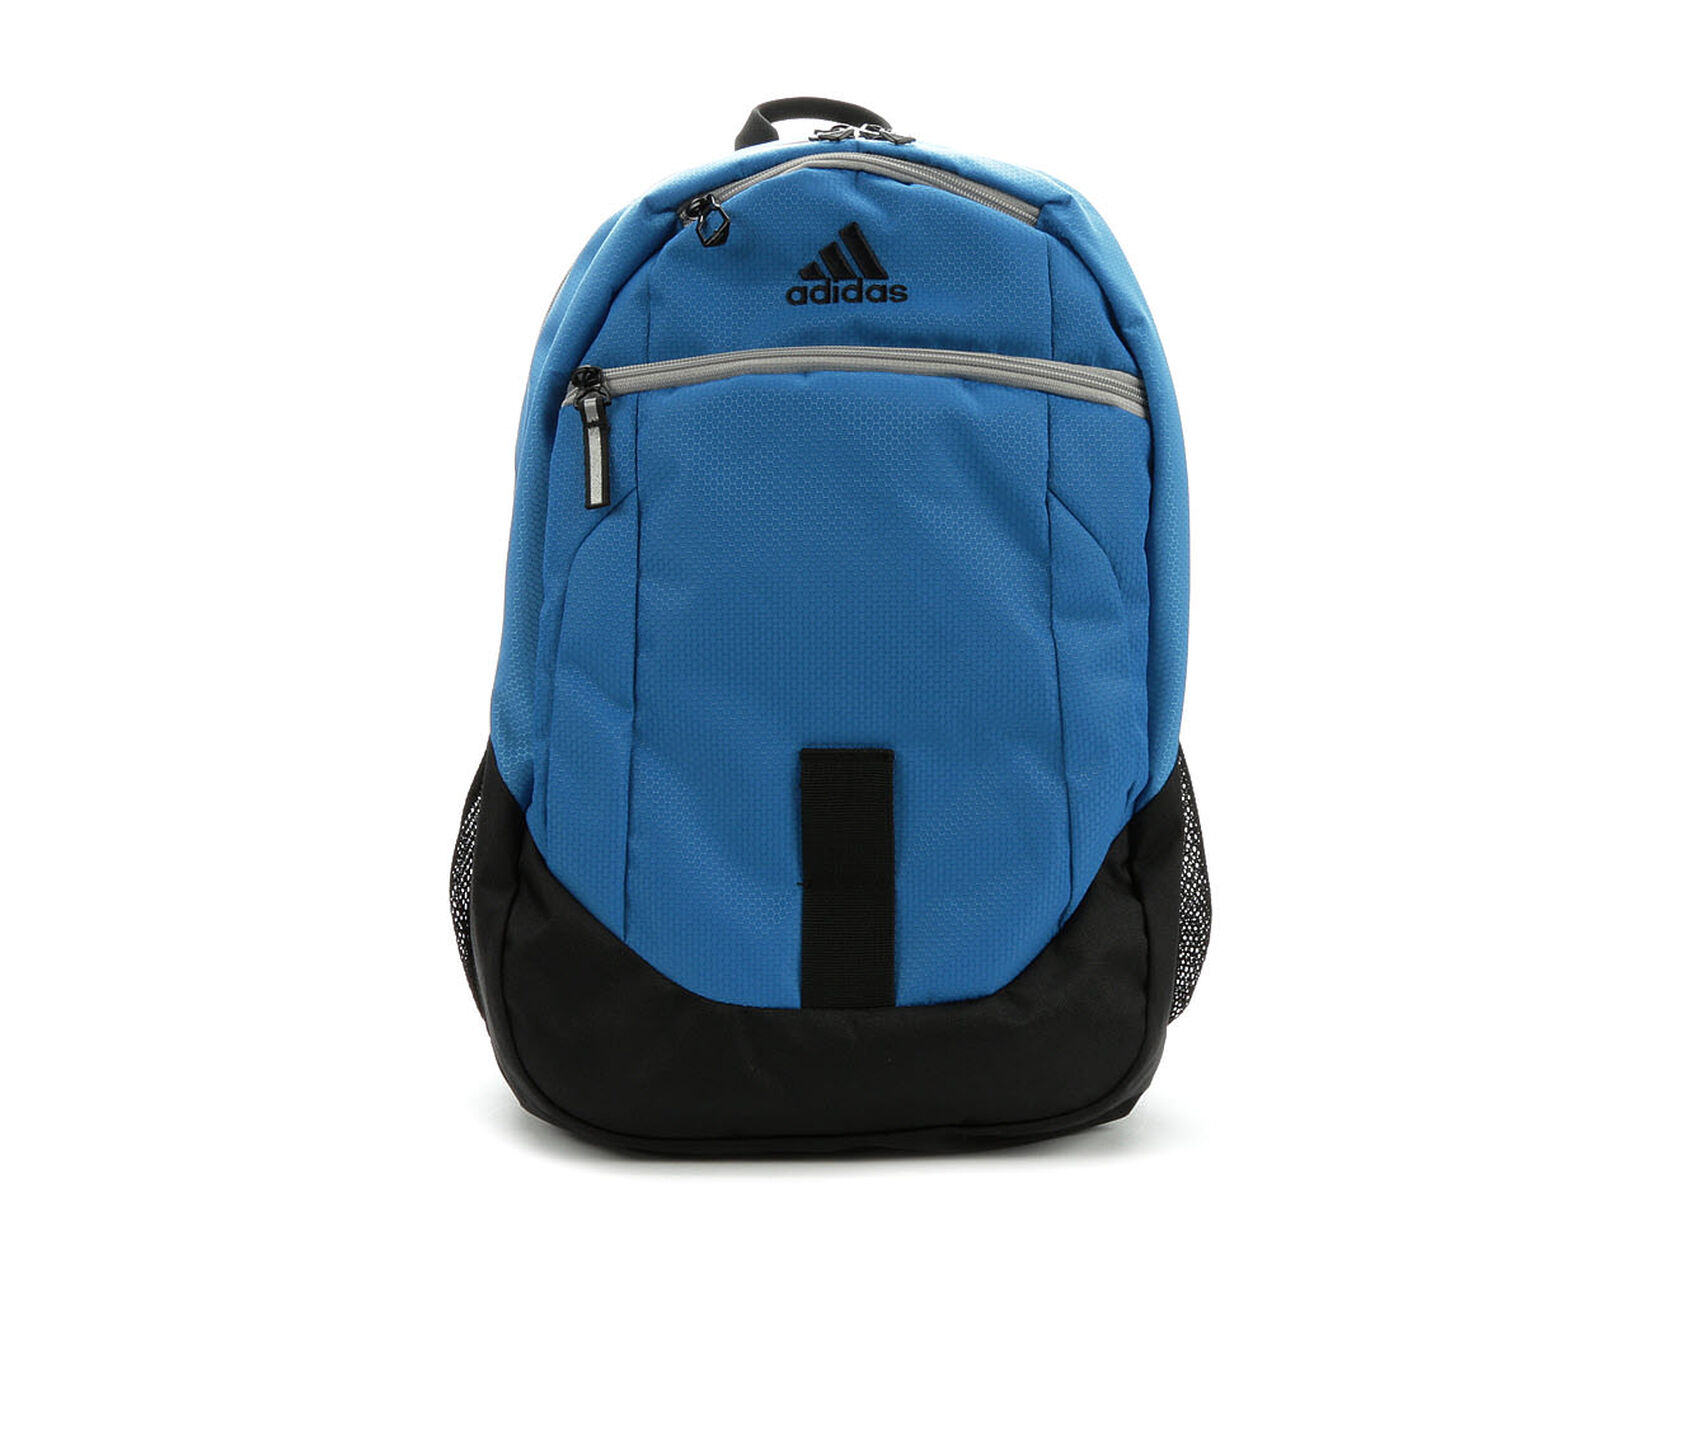 97ec37fa59 Adidas Foundation IV Backpack. Previous